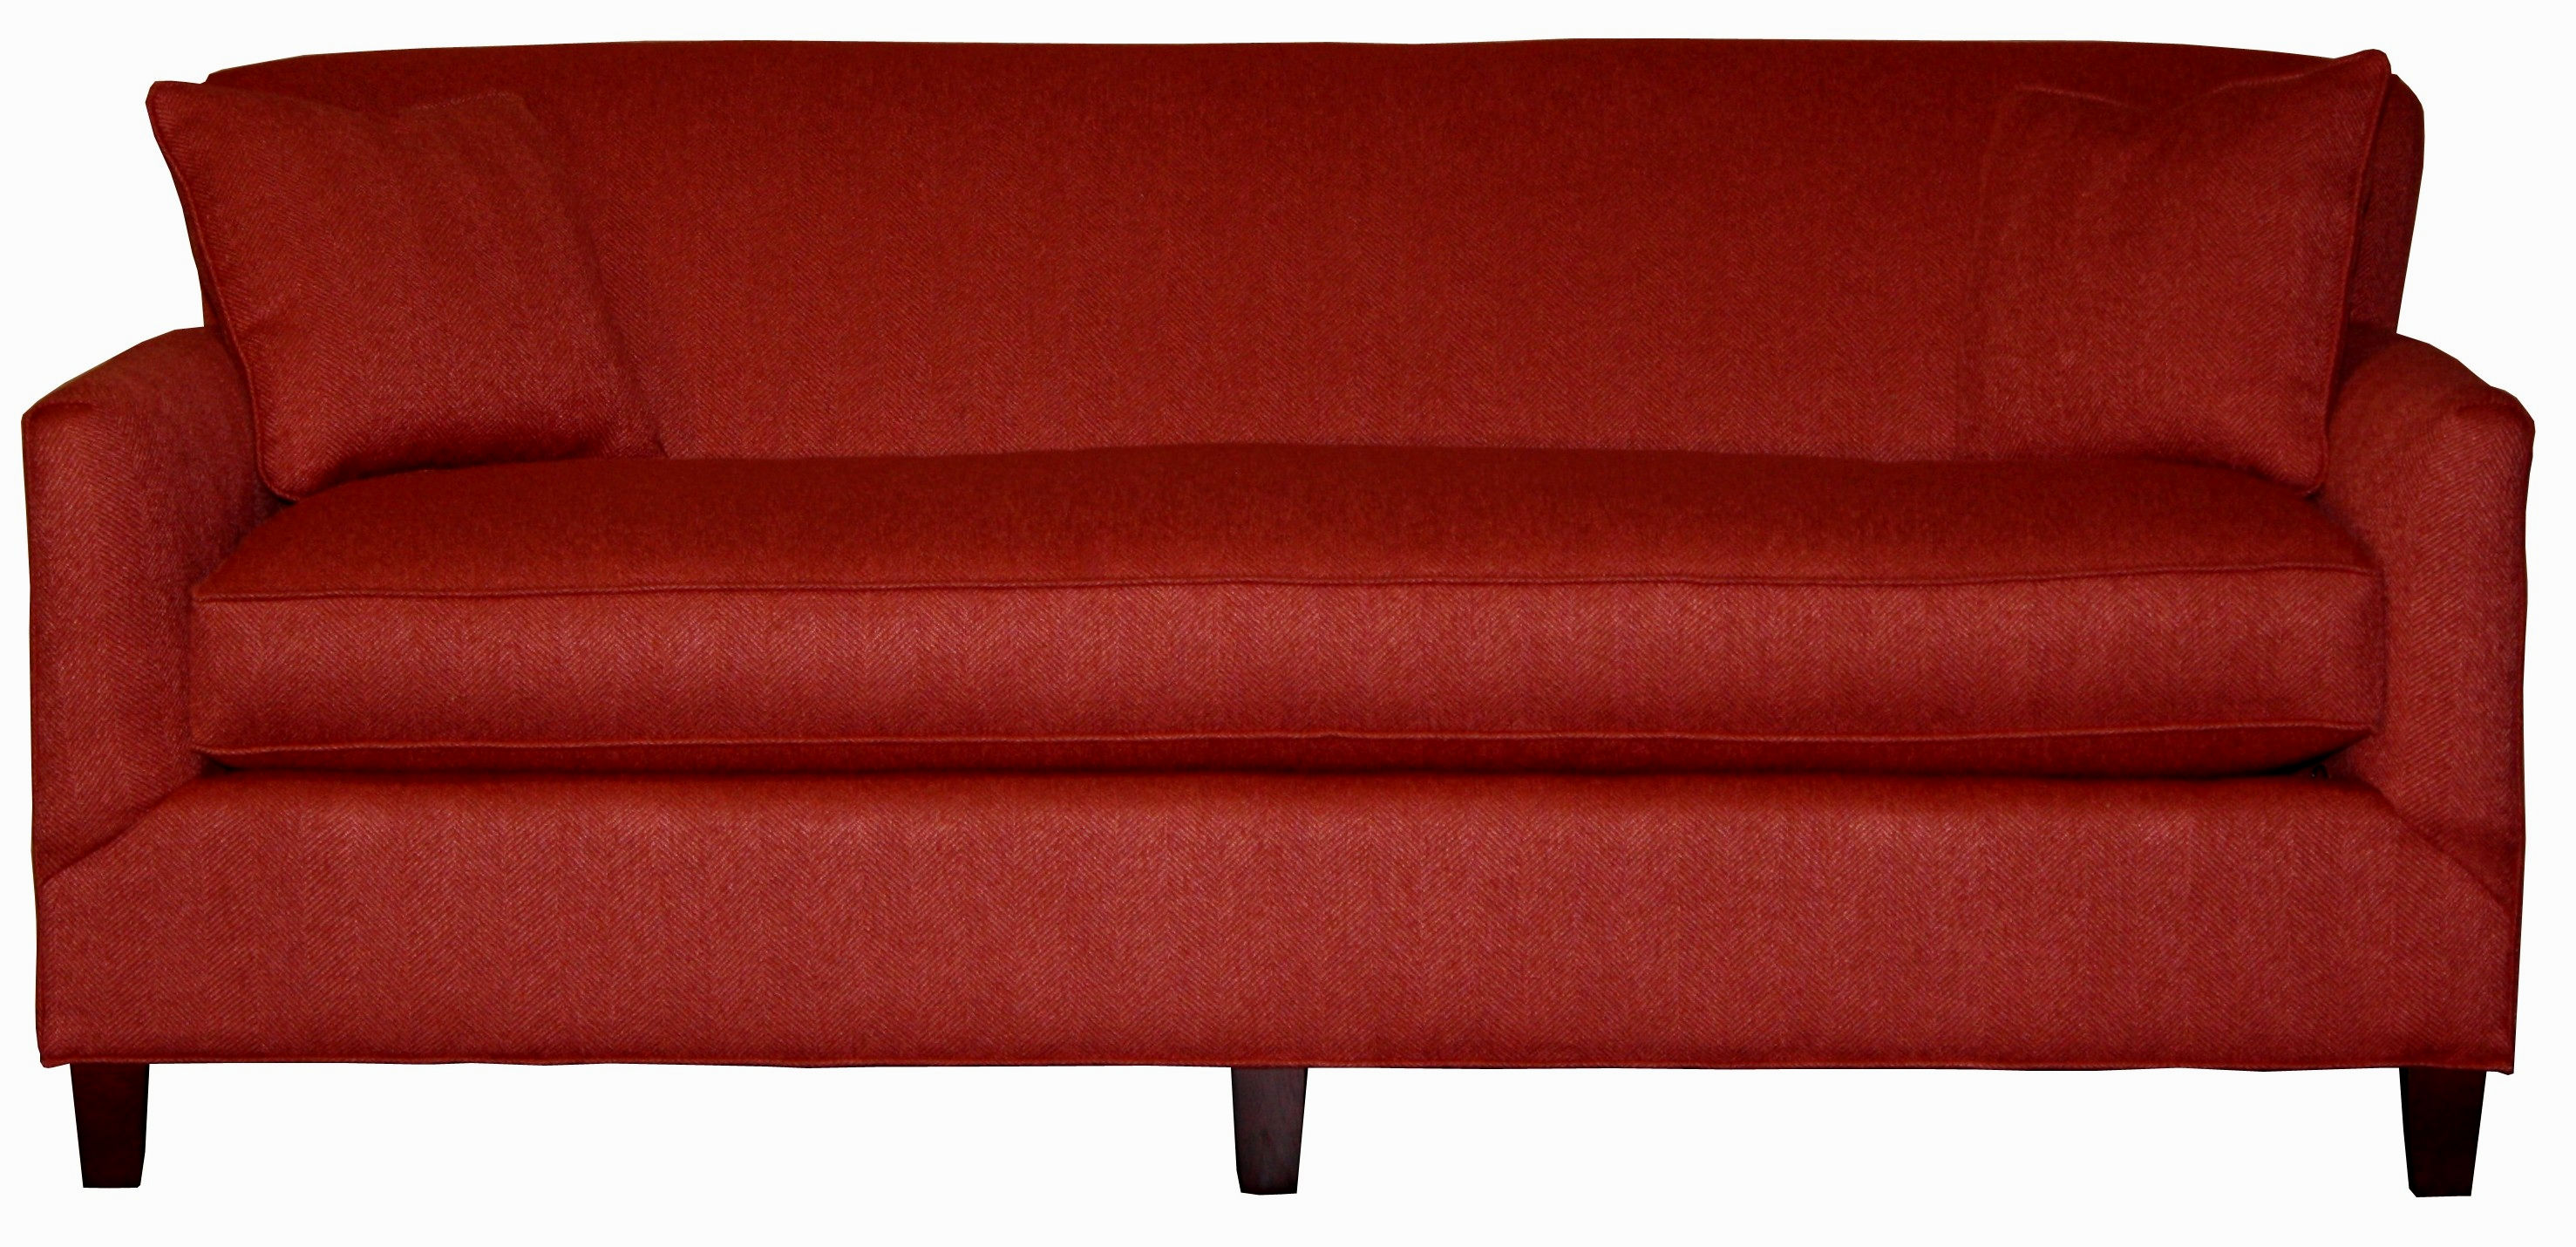 excellent luxe sofa slipcover picture-Contemporary Luxe sofa Slipcover Model